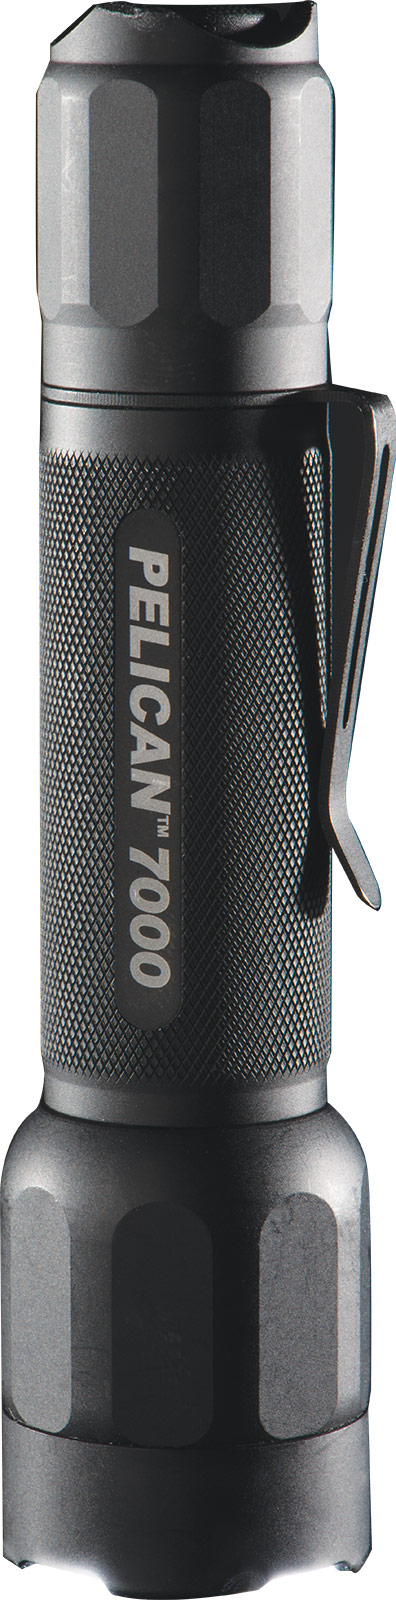 pelican 7000 tough black led flashlight